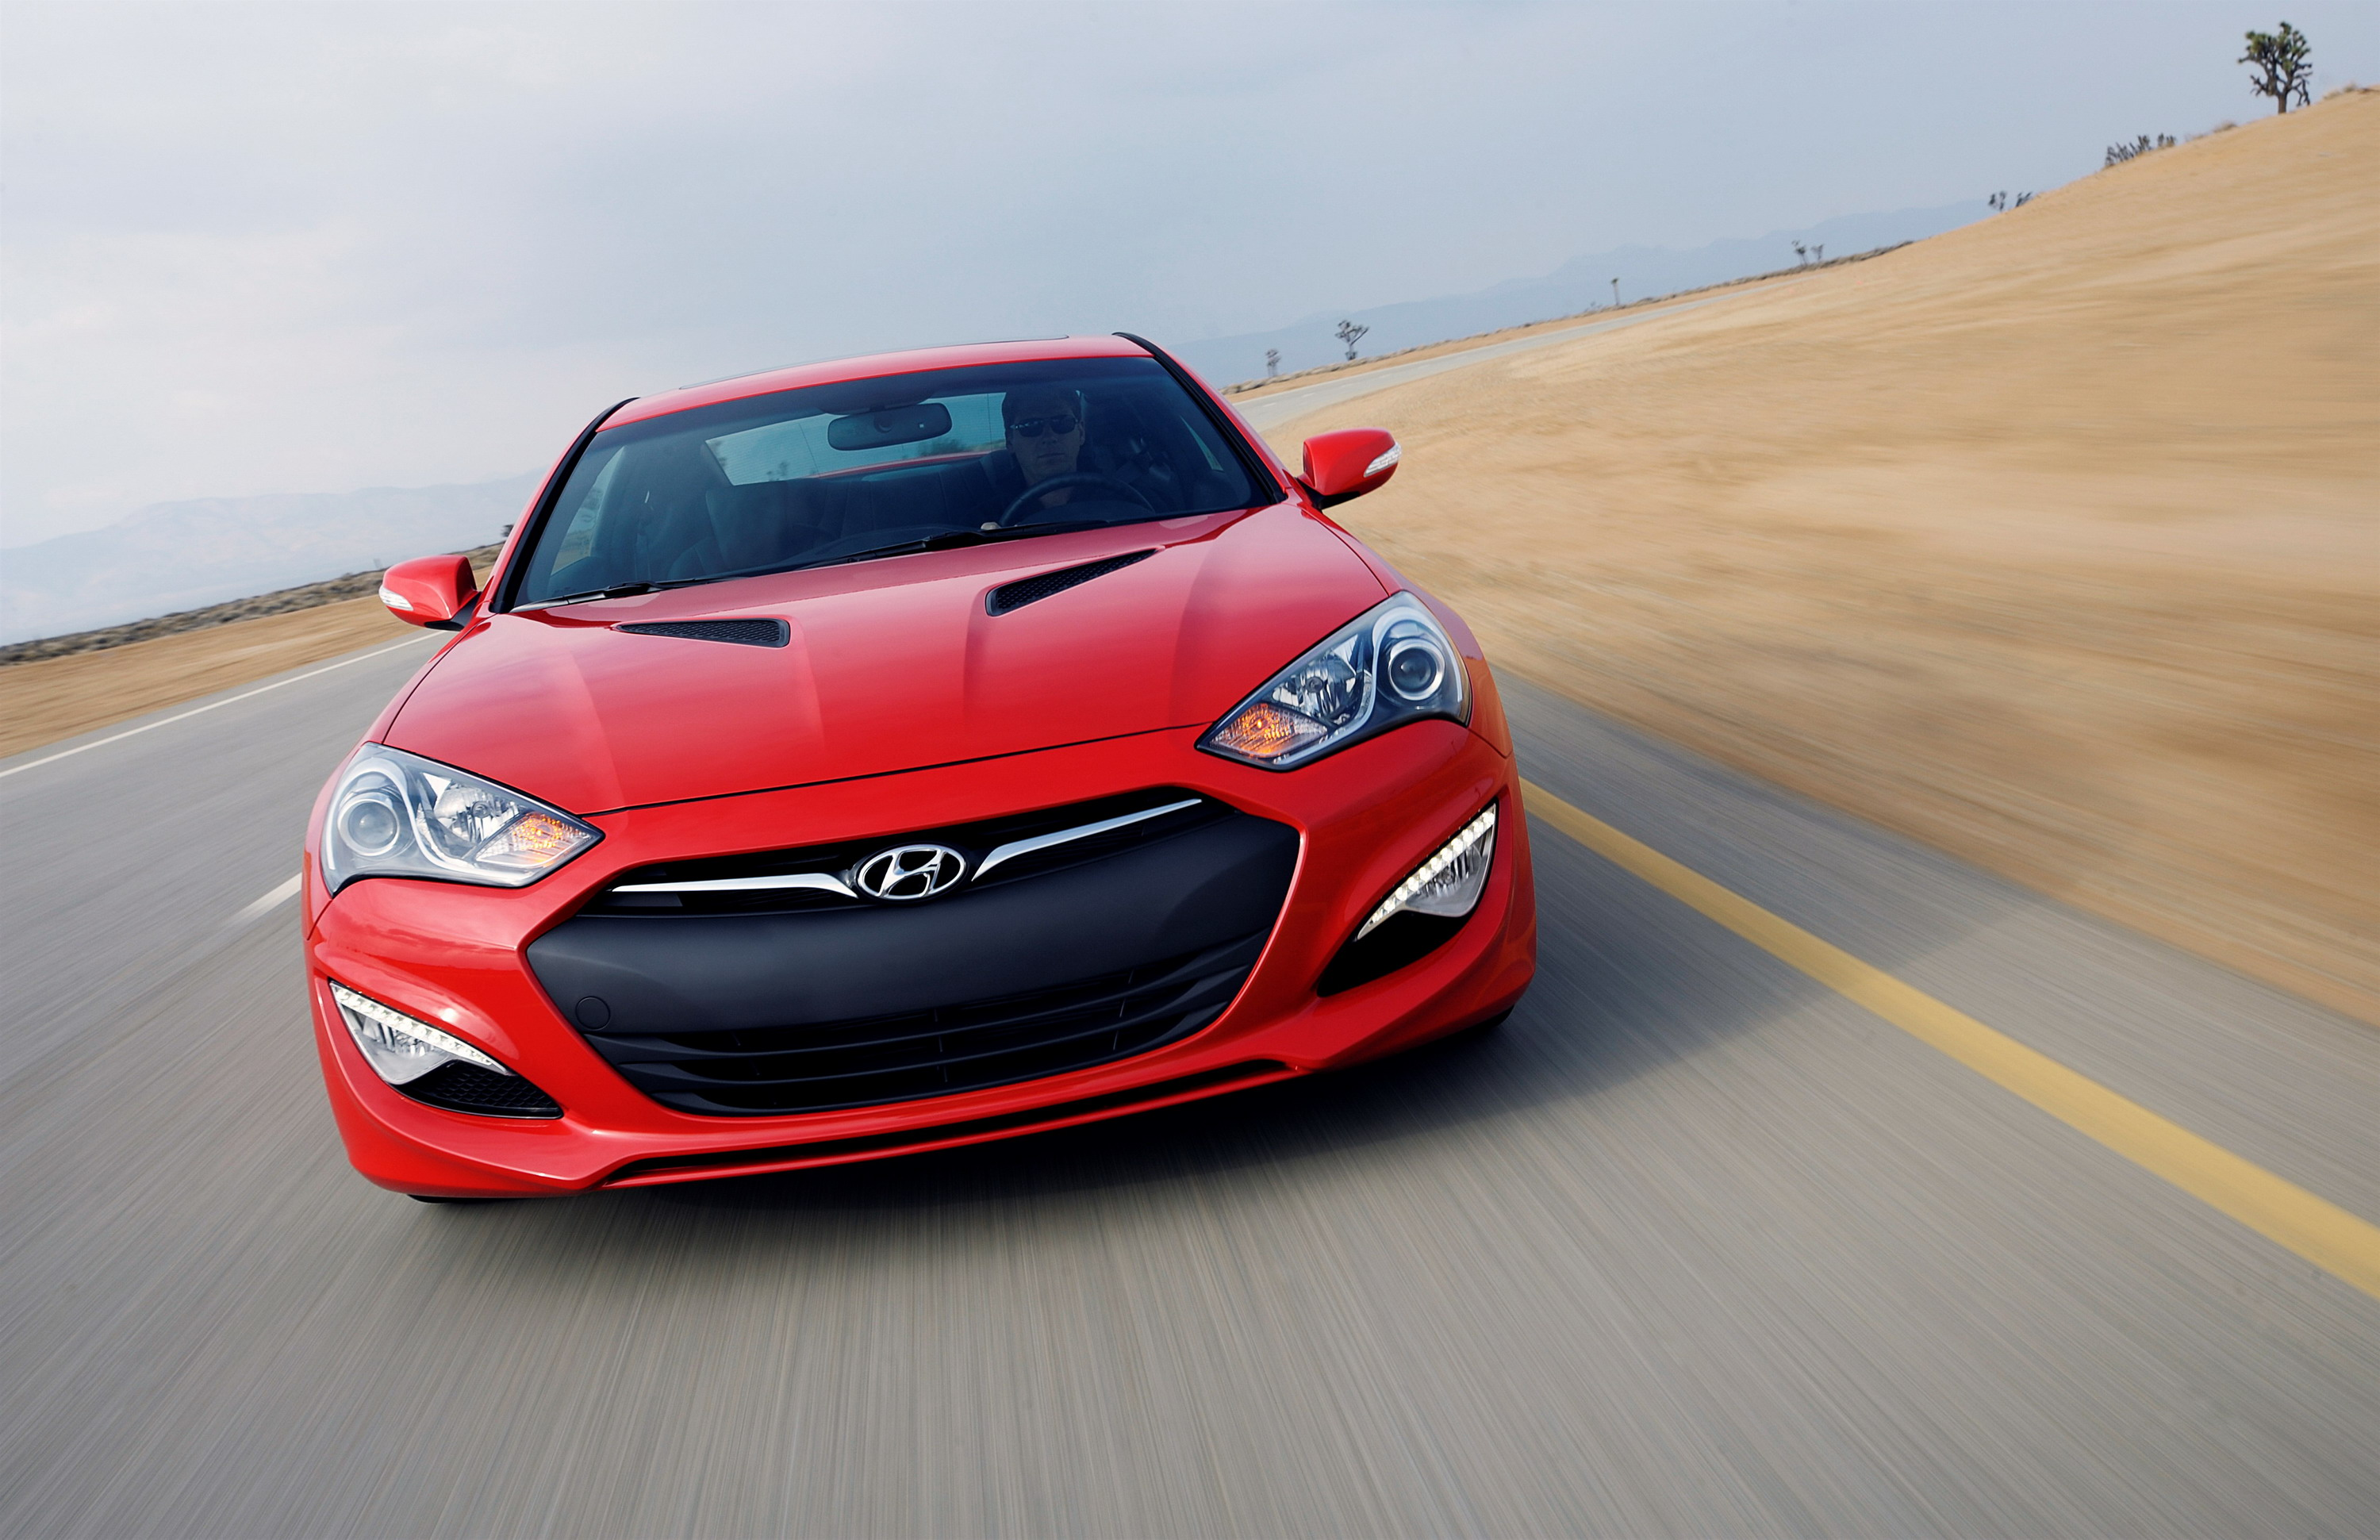 2014 Hyundai Genesis Coupe | Top Speed. »